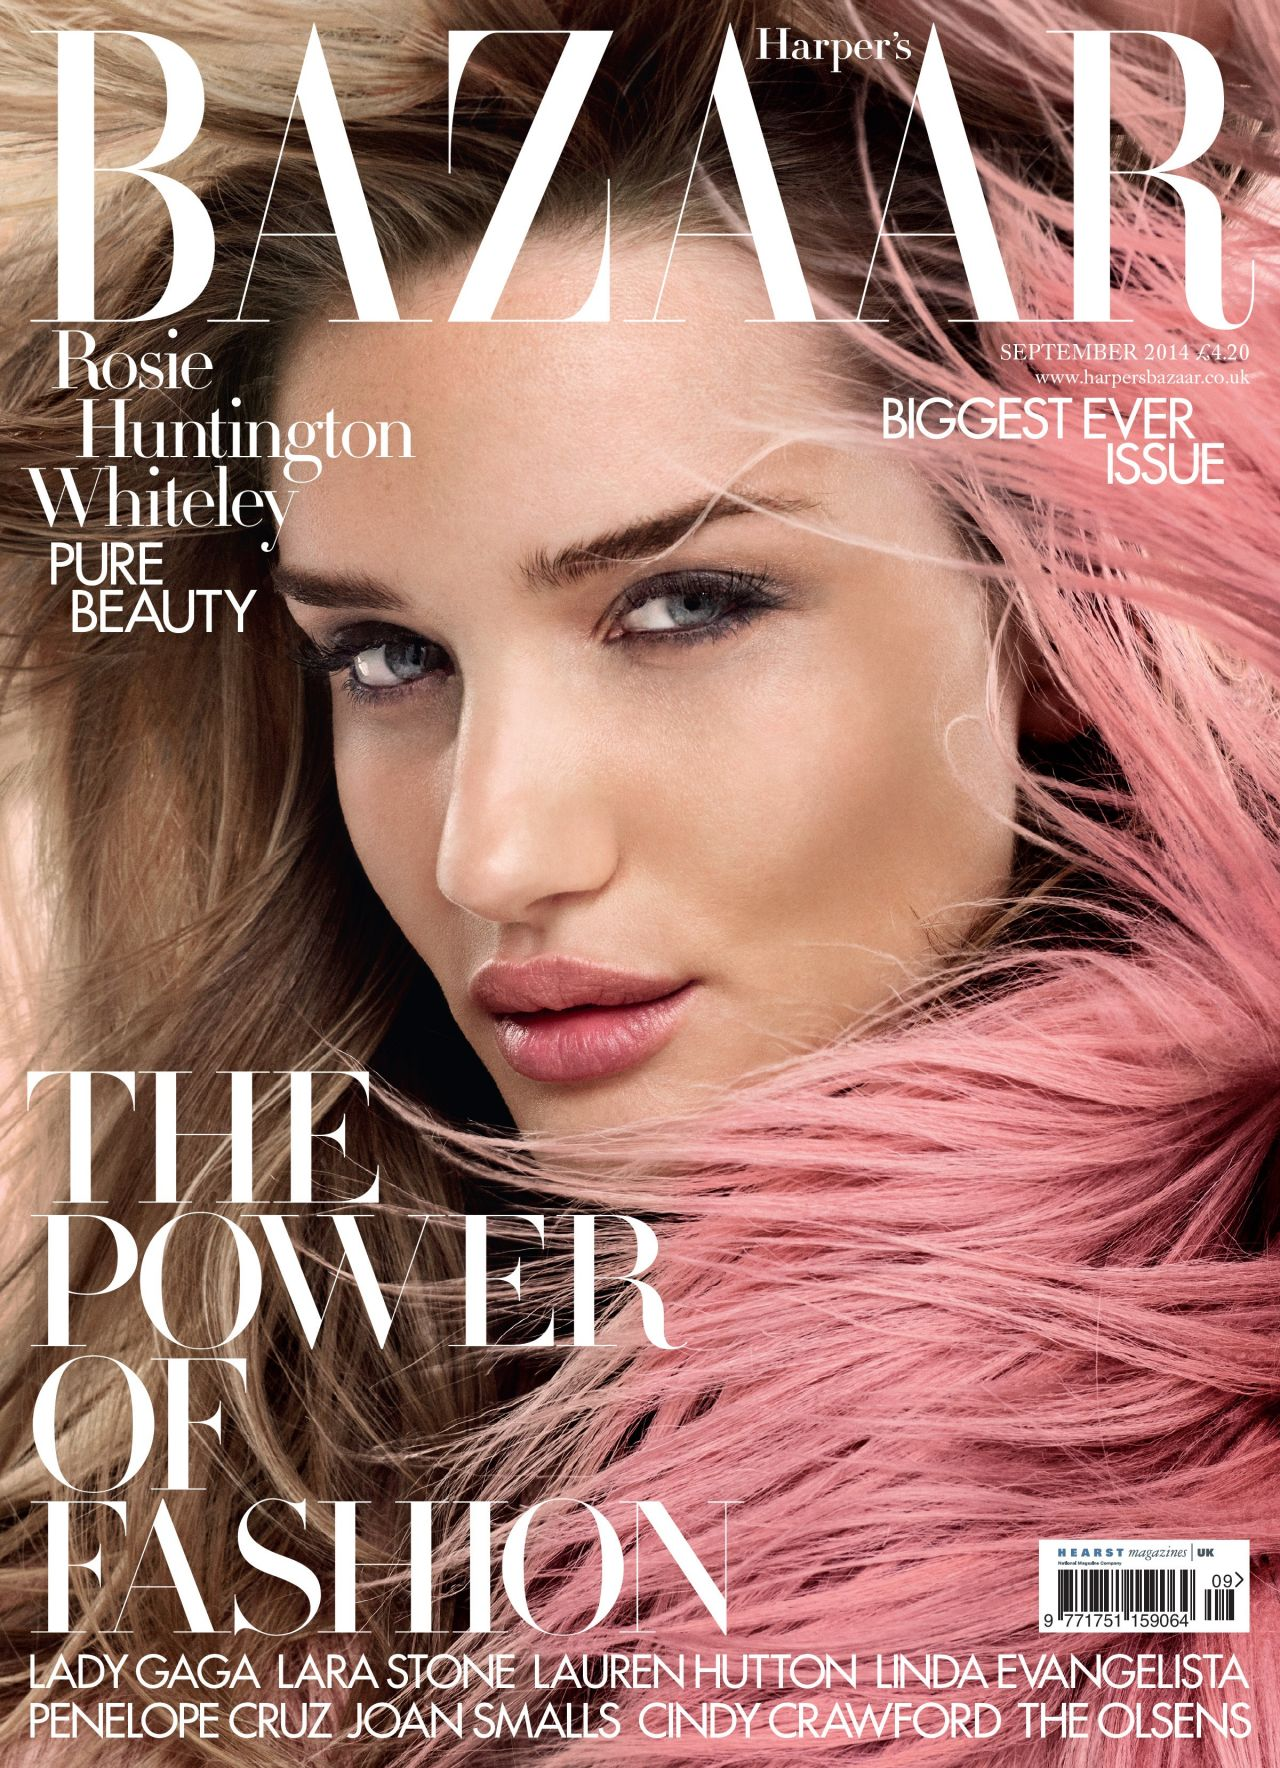 Fashion Magazines Look To Familiar Faces For Cover Models: Harper's Bazaar Magazine (UK